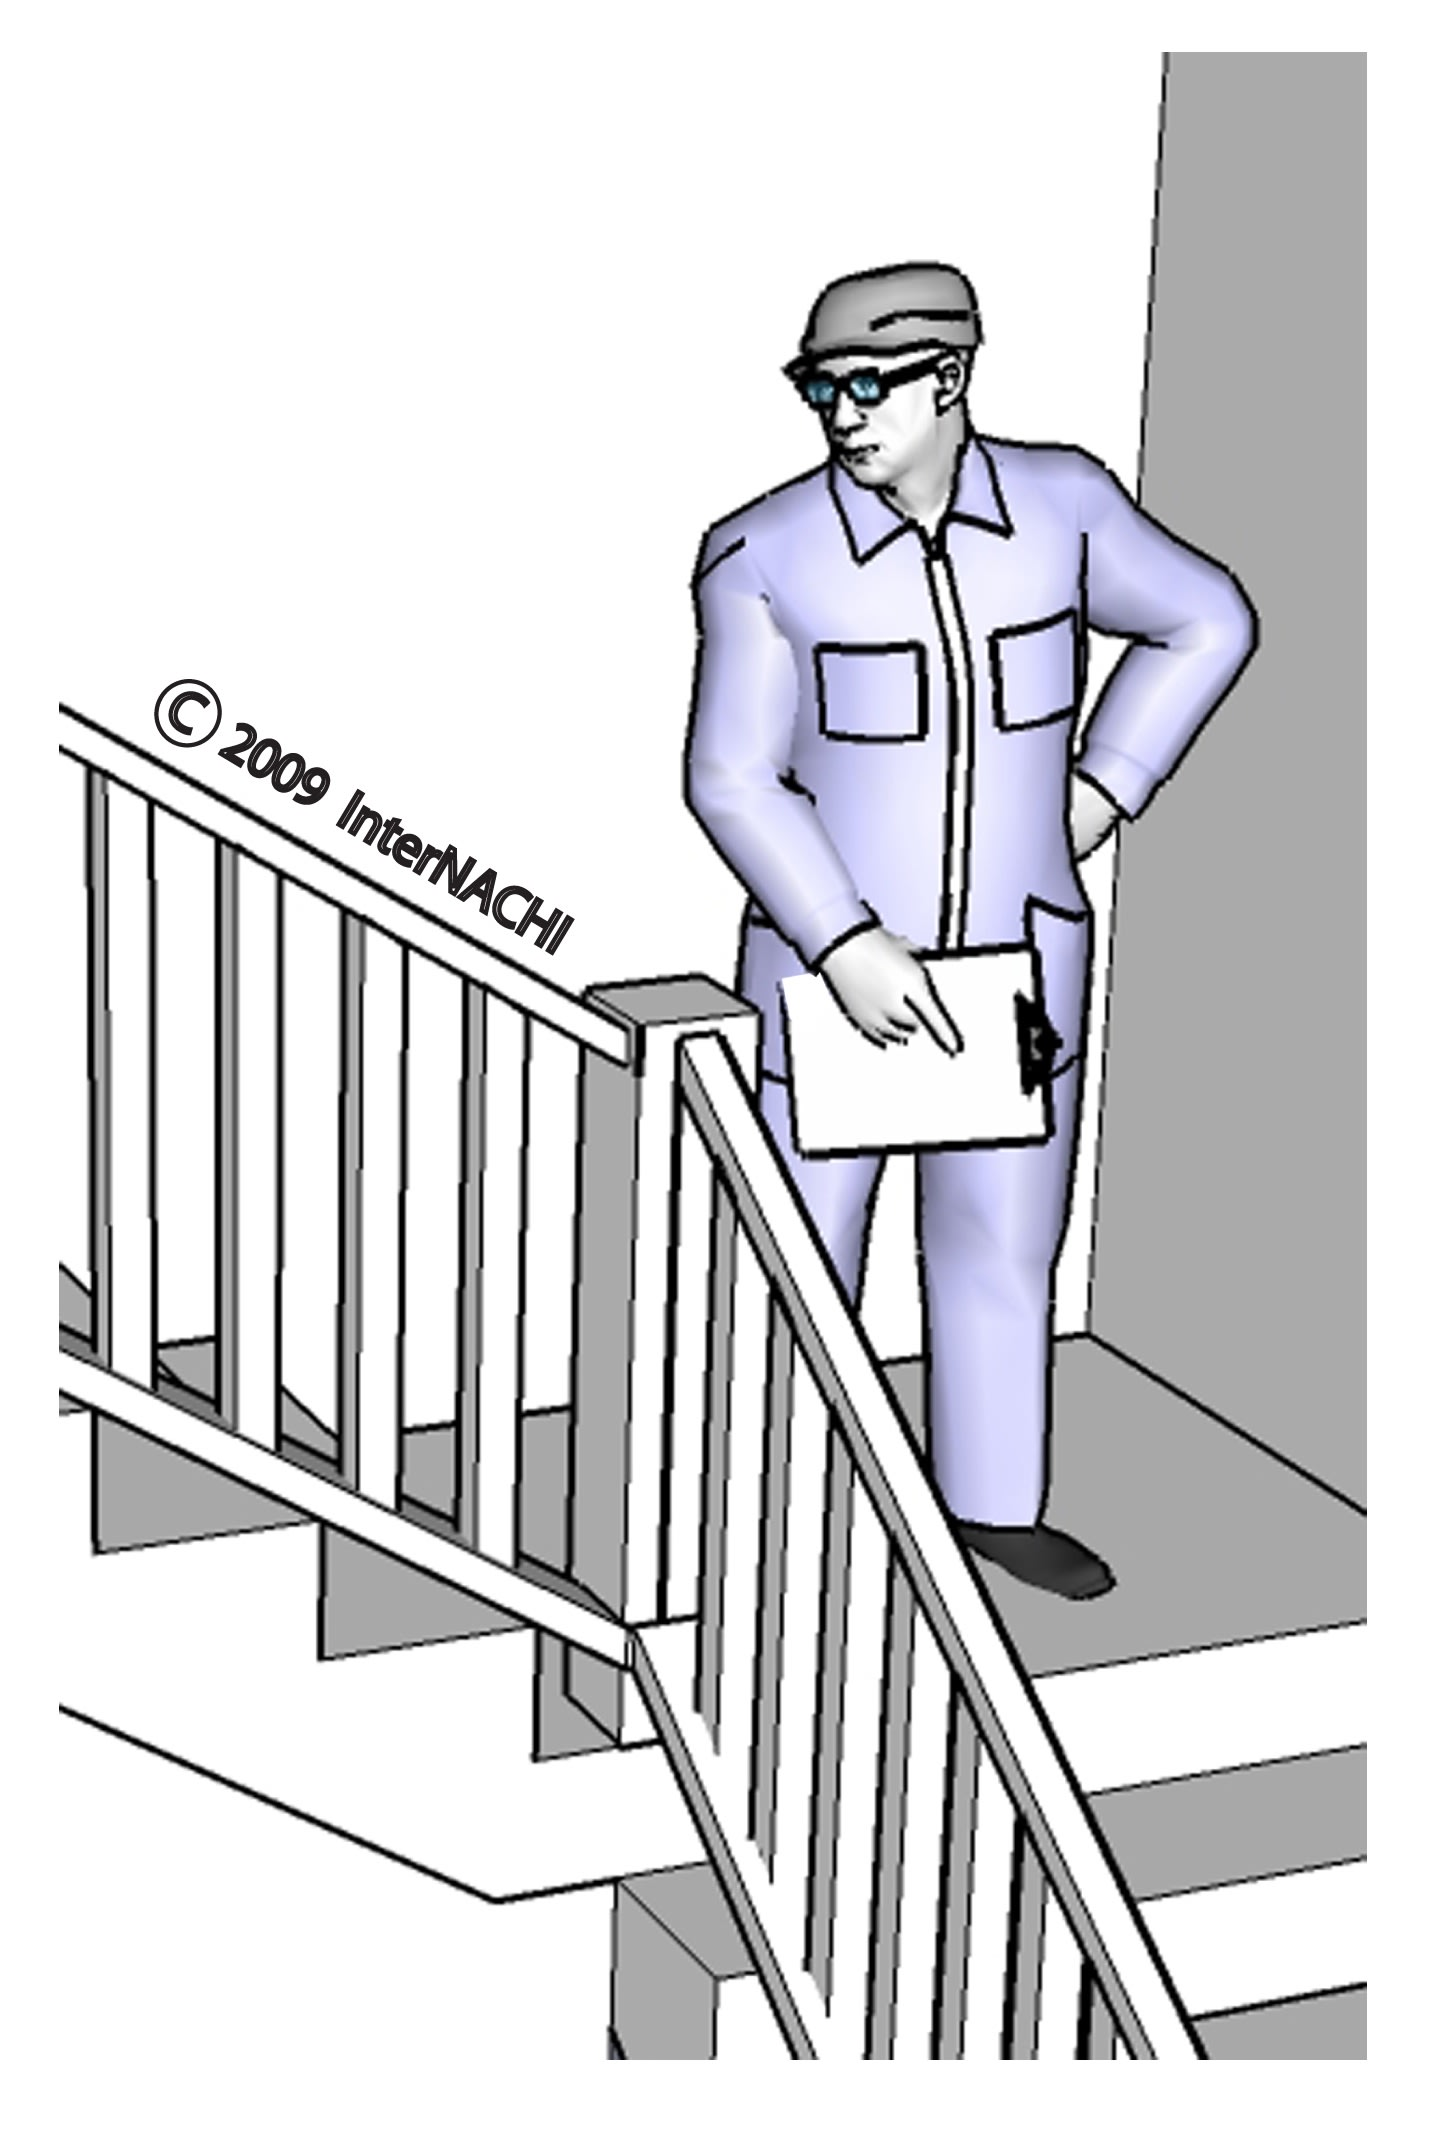 Stair inspection.